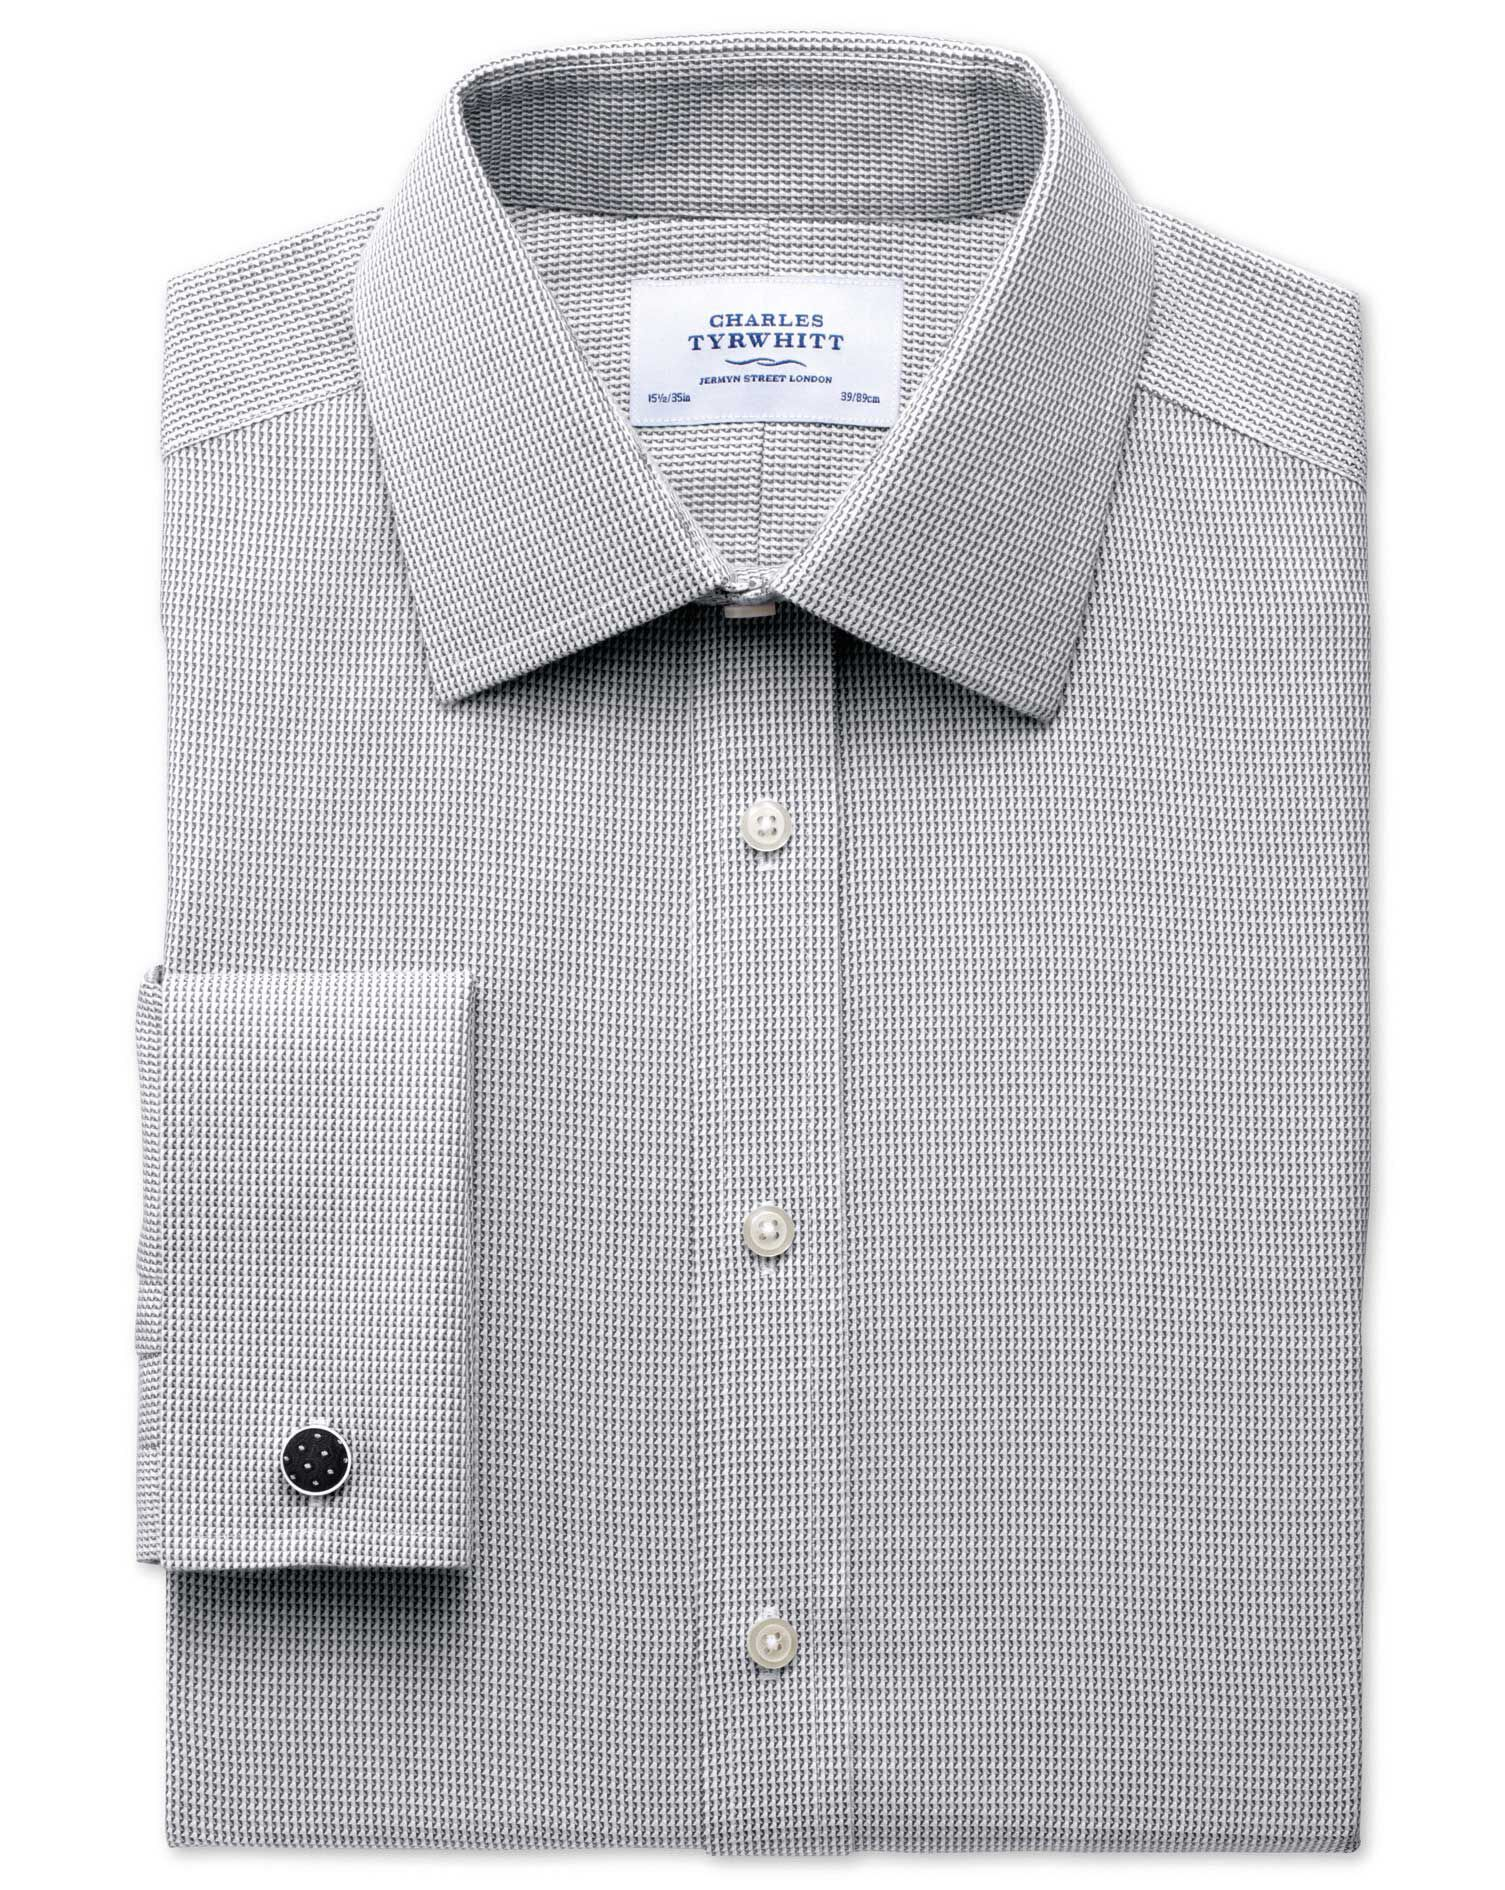 Classic Fit Non-Iron Grey Cotton Formal Shirt Double Cuff Size 15.5/37 by Charles Tyrwhitt